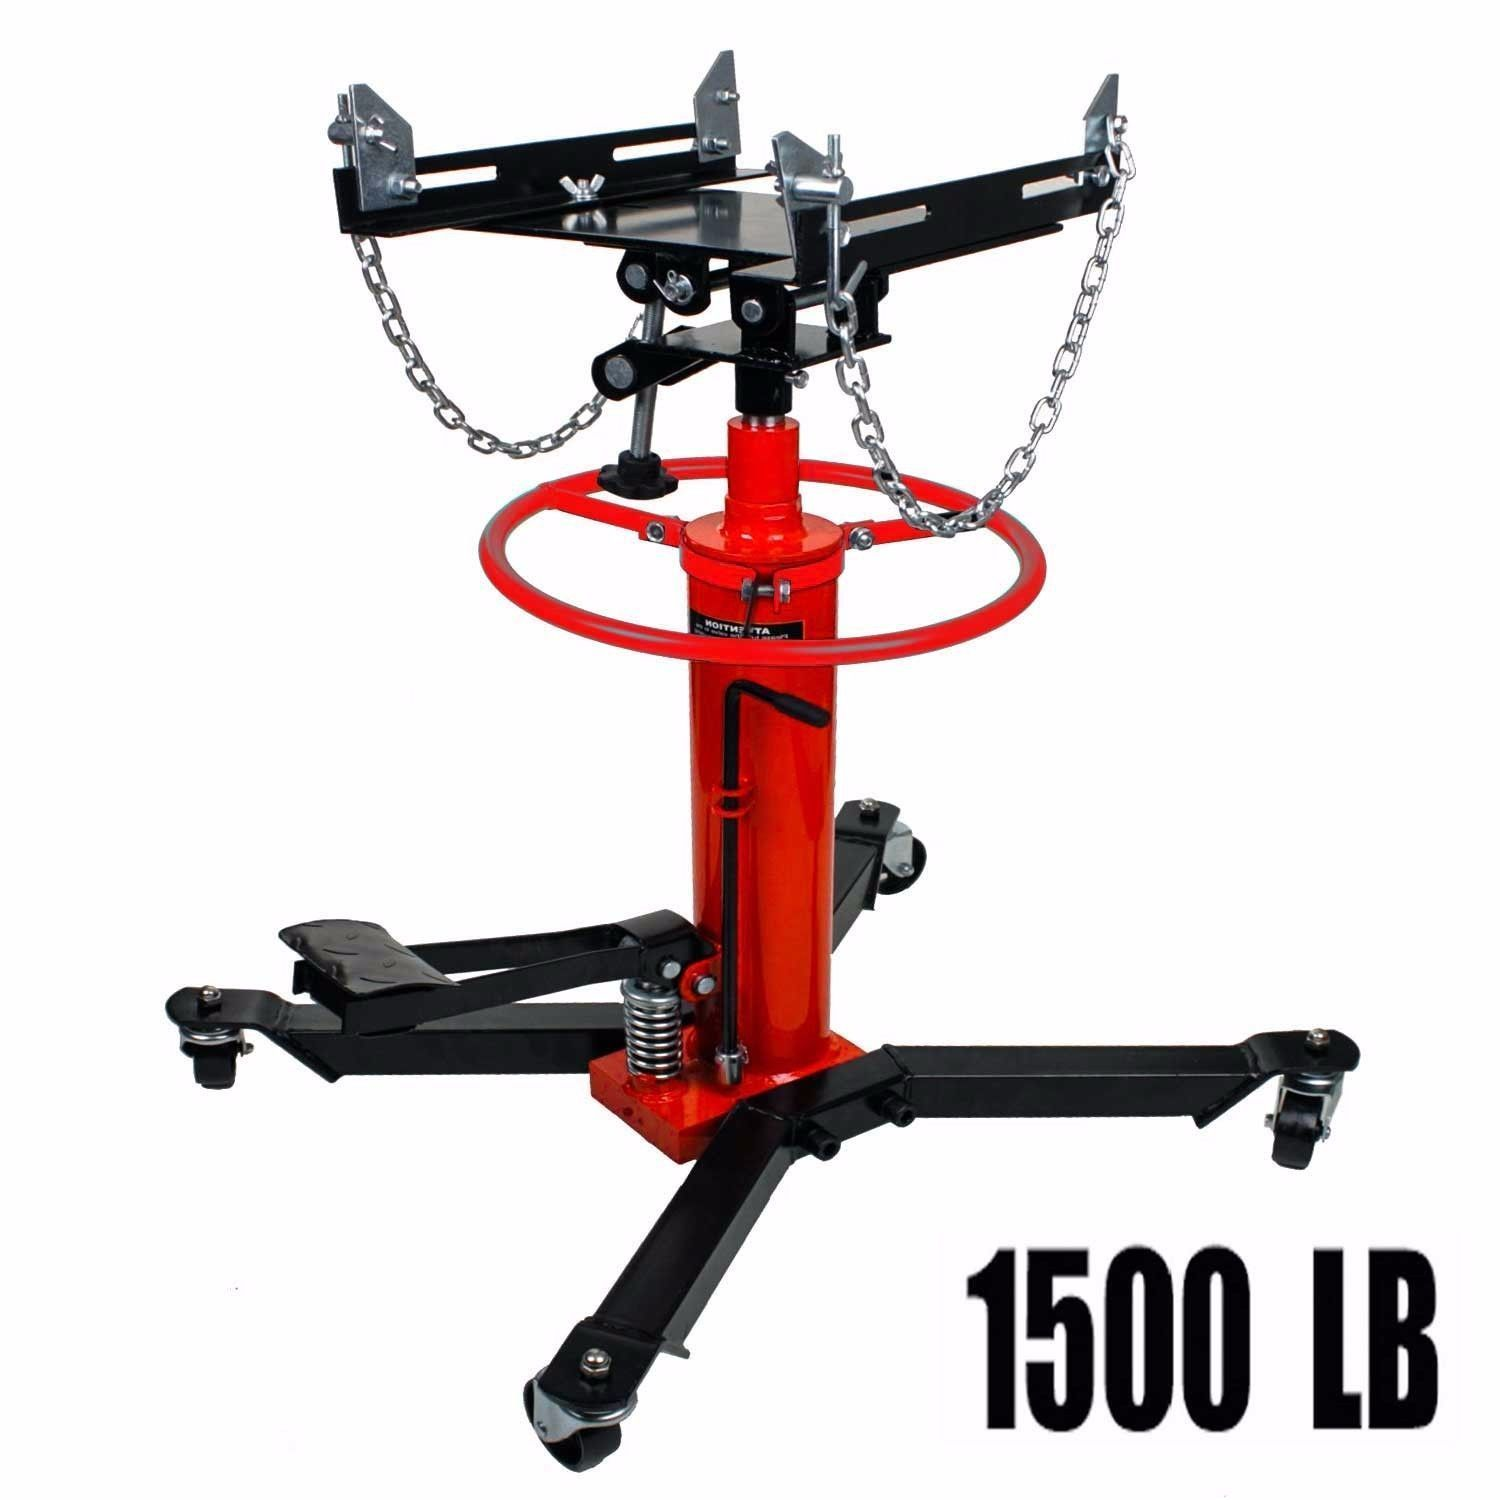 Details about A+1660lbs 0.75Ton Transmission Jack 2 Stage